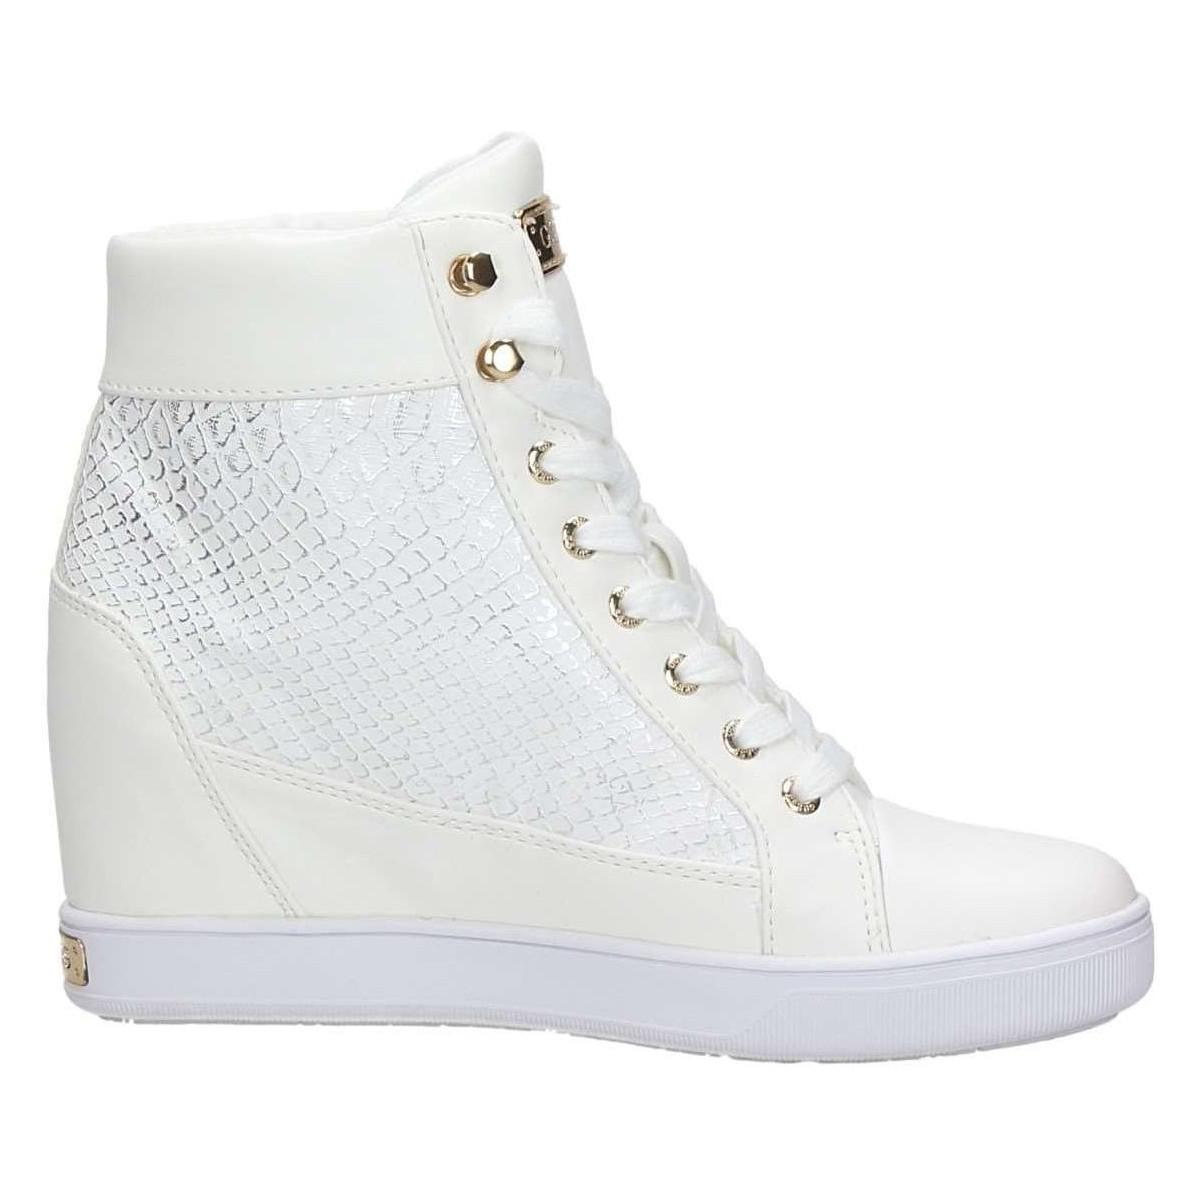 Guess Flfor1 Fal12 Sneakers Women's Shoes (high-top Trainers) In White